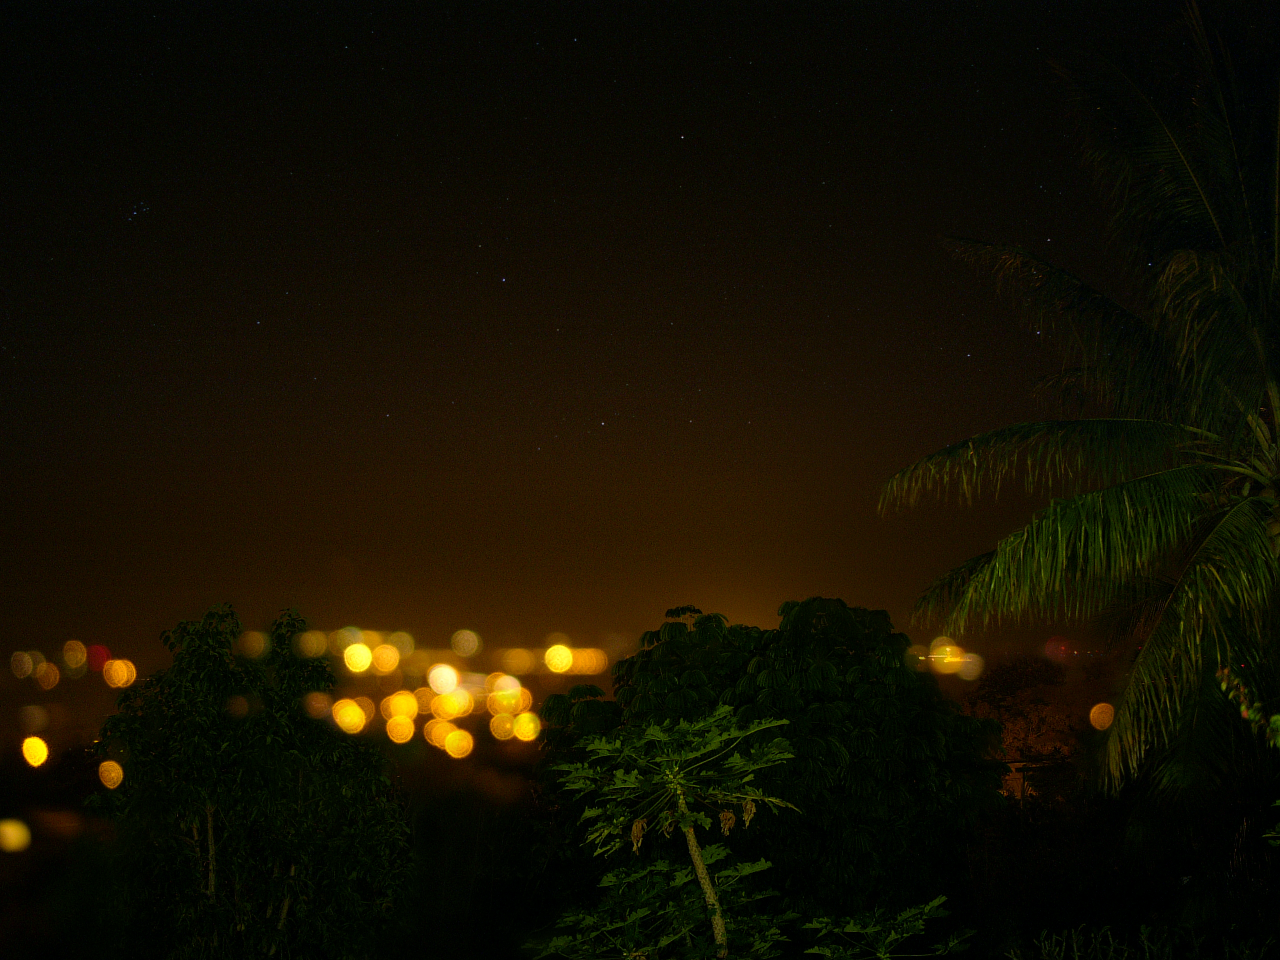 Kona, Hawaii. Looking west out over the Pacific Ocean with the warm town lights illuminating a hazy 8pm sky.